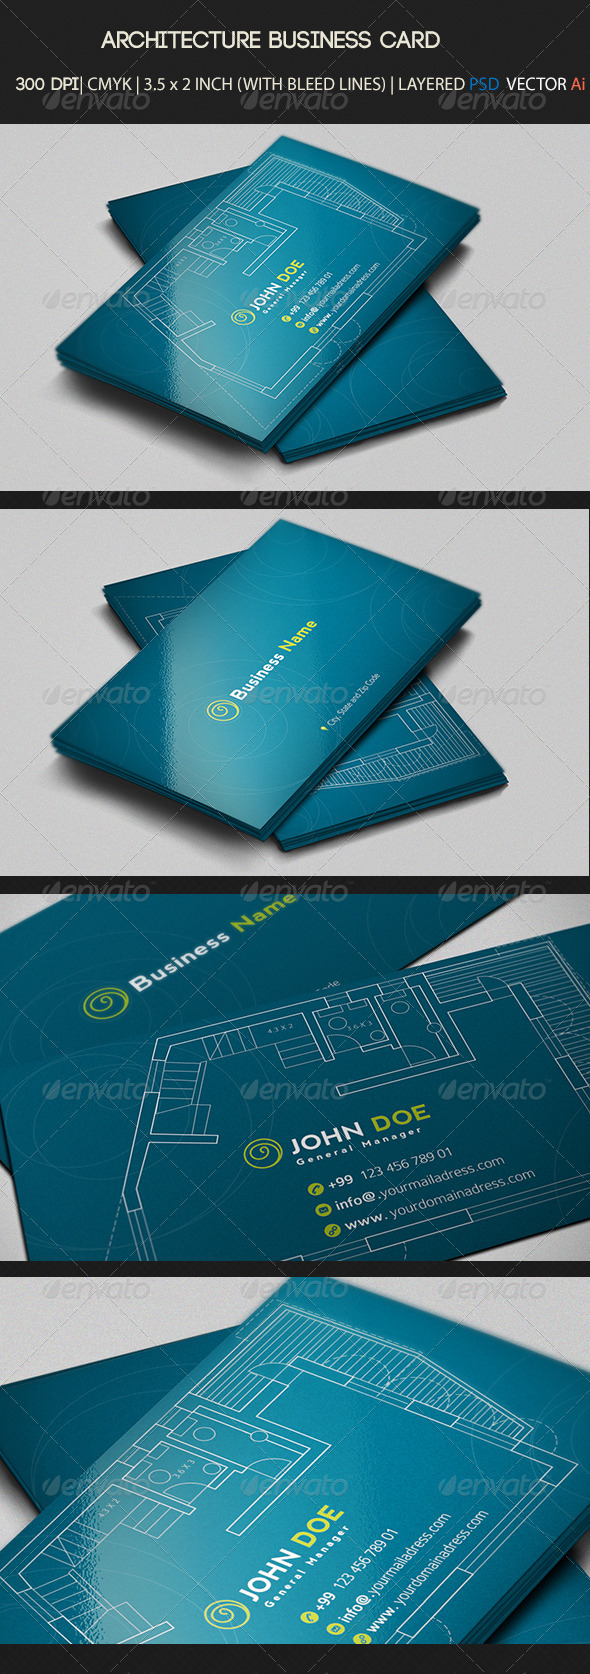 architecture Business Card  - Creative Business Cards